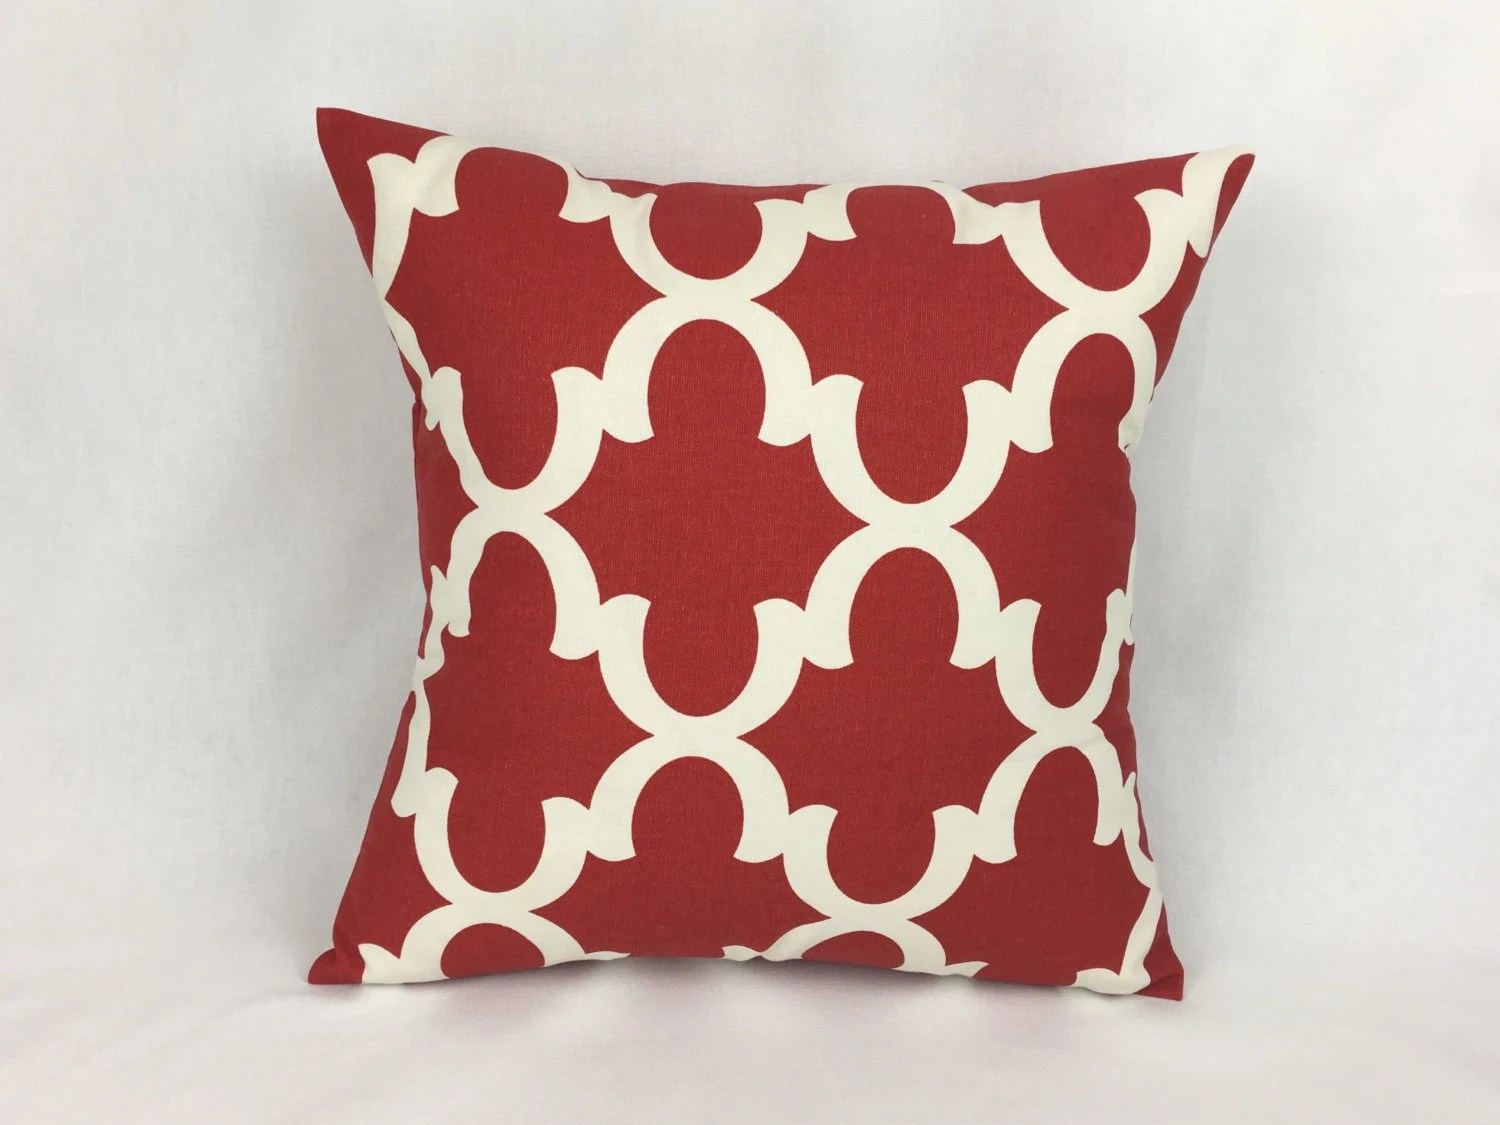 26x26 Euro Sham Pillow Cover 26x26 Red 26x26 Pillow Cover